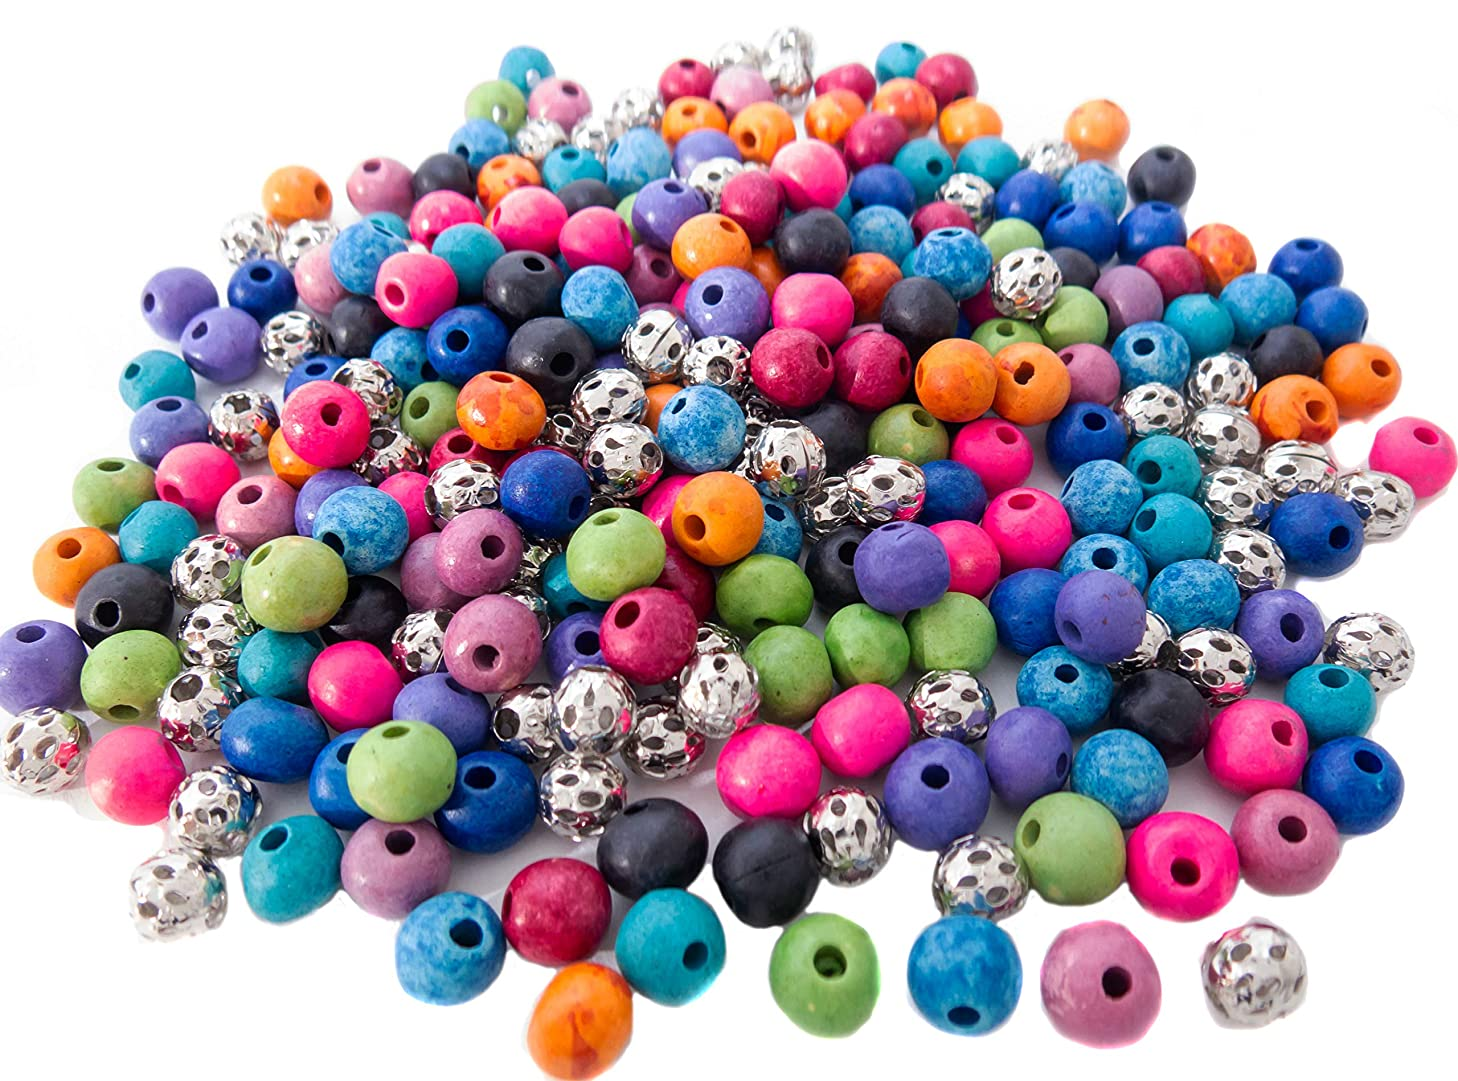 300 Ceramic Beads & 100 Silver Filigree Beads for Jewelry Making Supplies for Adults, 8mm Crafting Bead Kit, Essential Oil Diffuser Bracelet & Necklace DIY, 10 Colors, 2 Bracelets for Inspiration